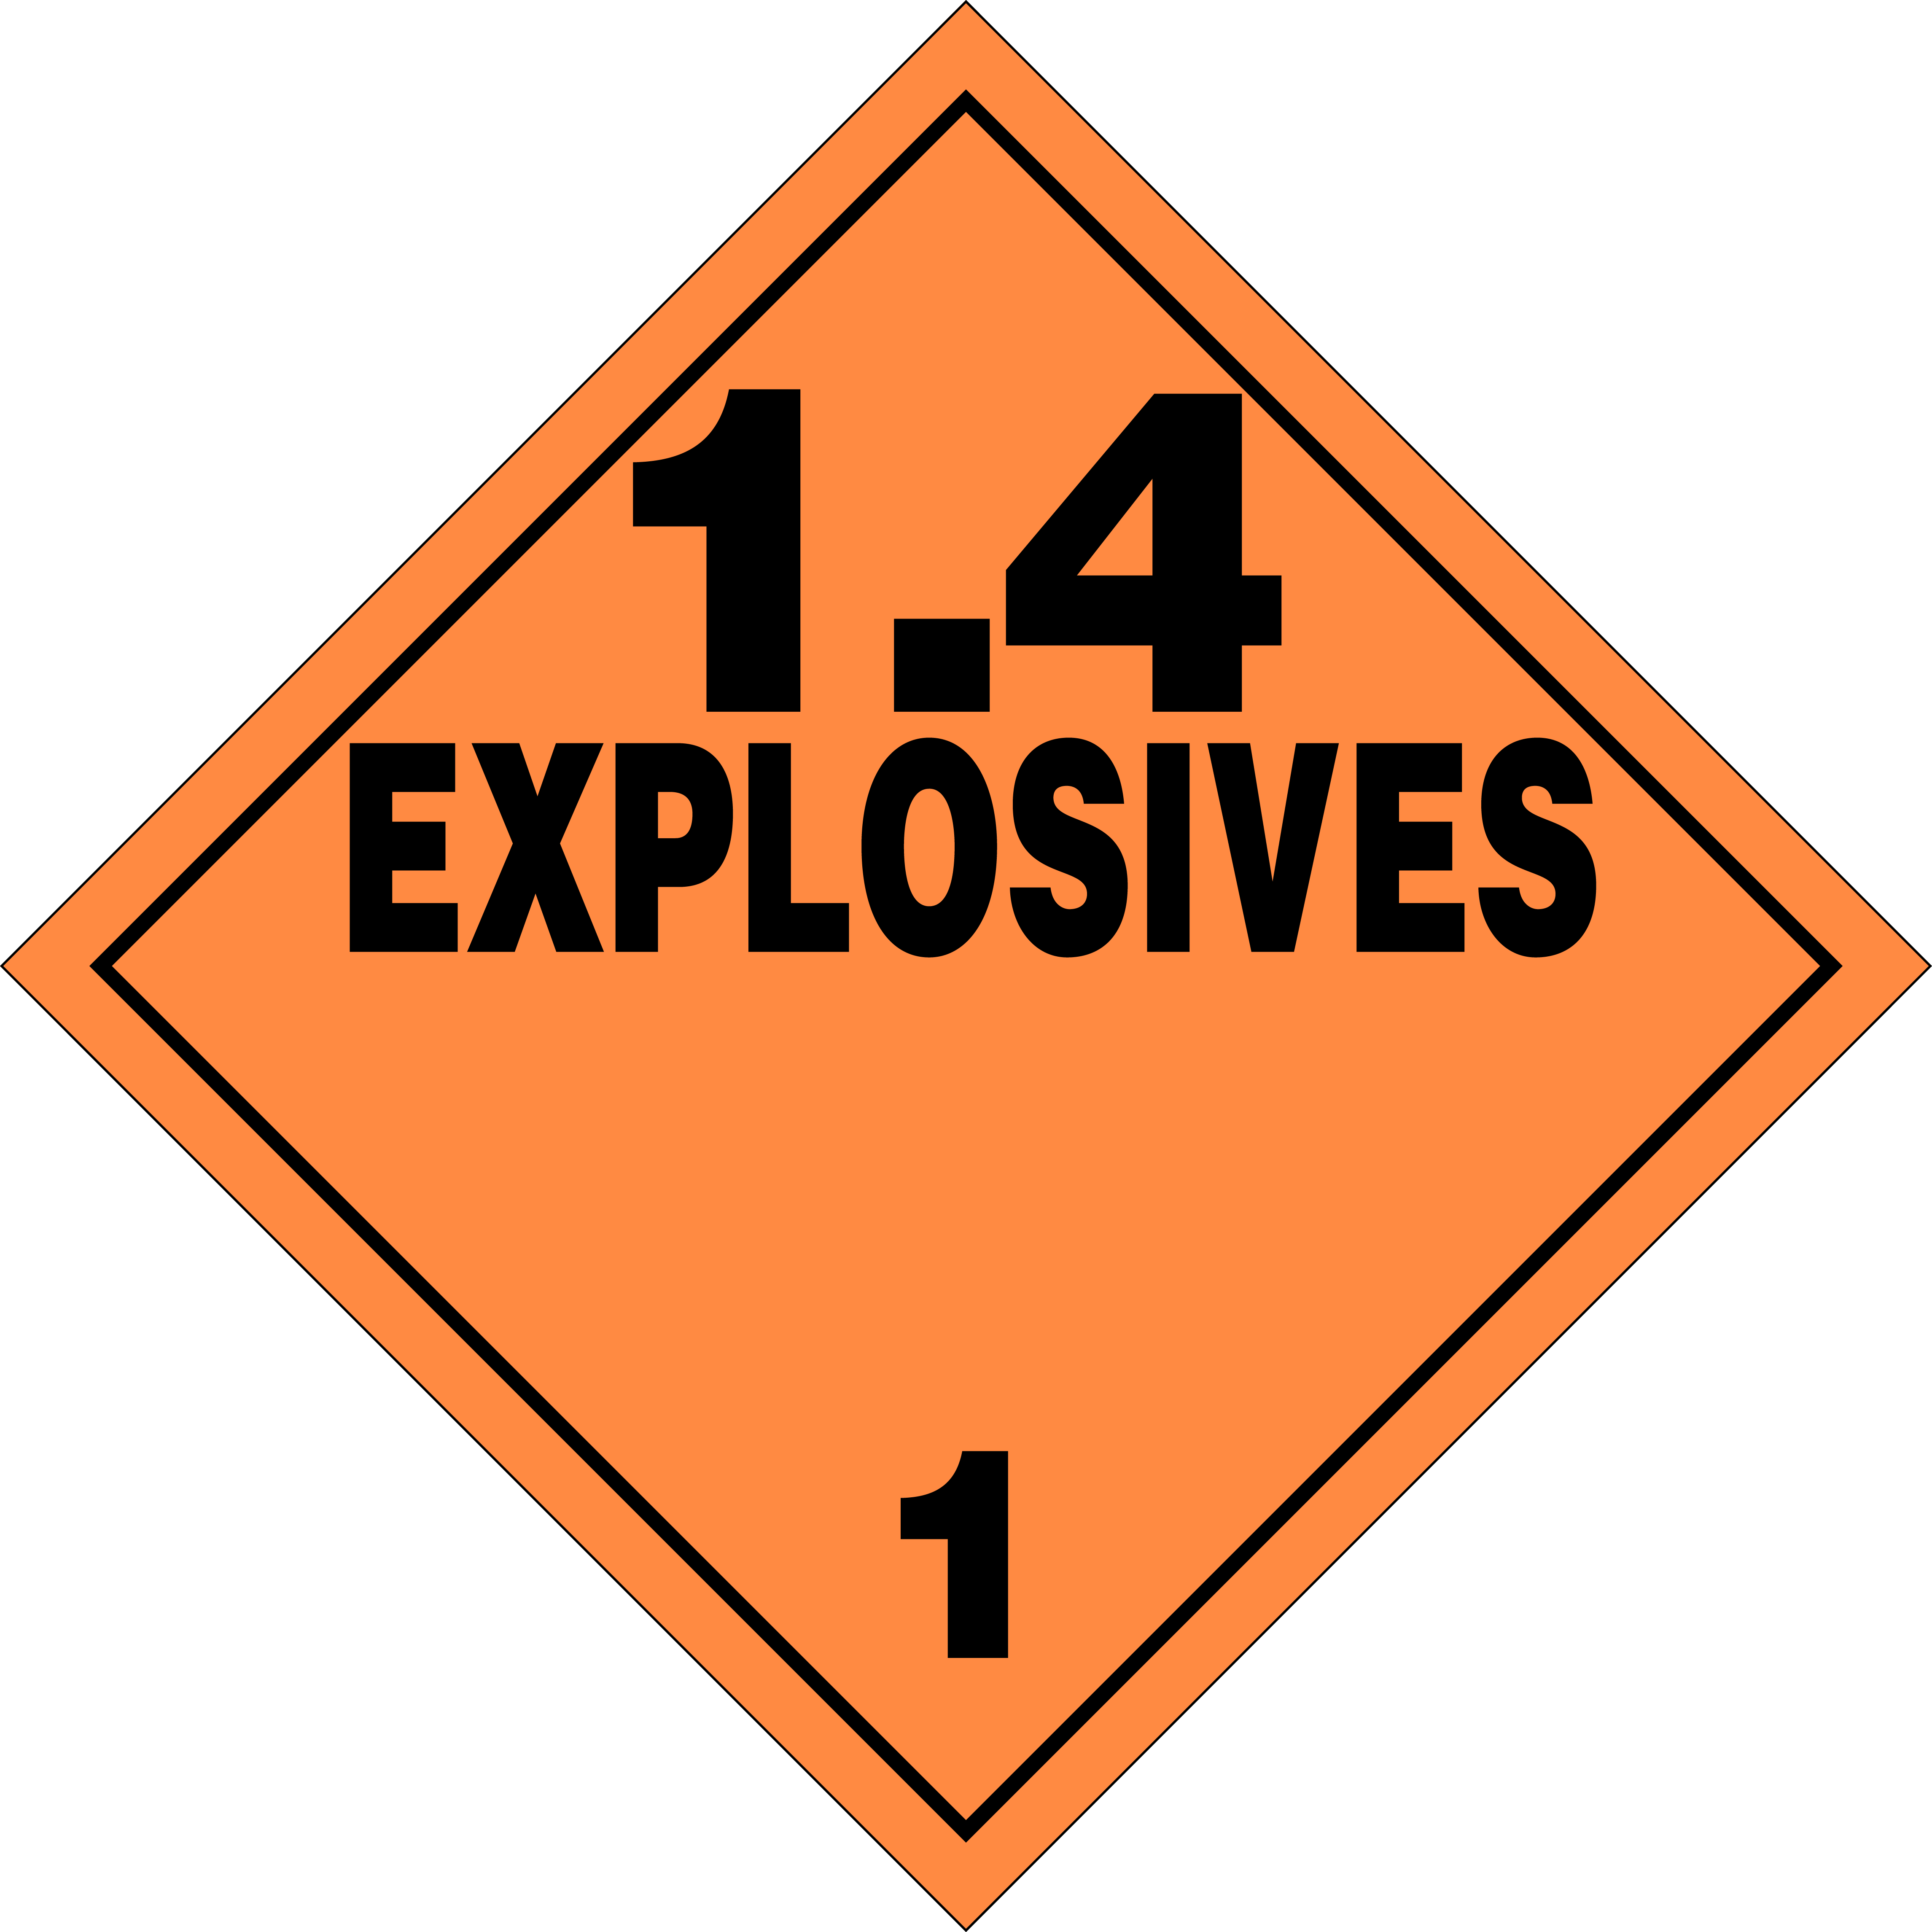 Cartoon Hazmat Placard Free Cliparts That You Can Download To You